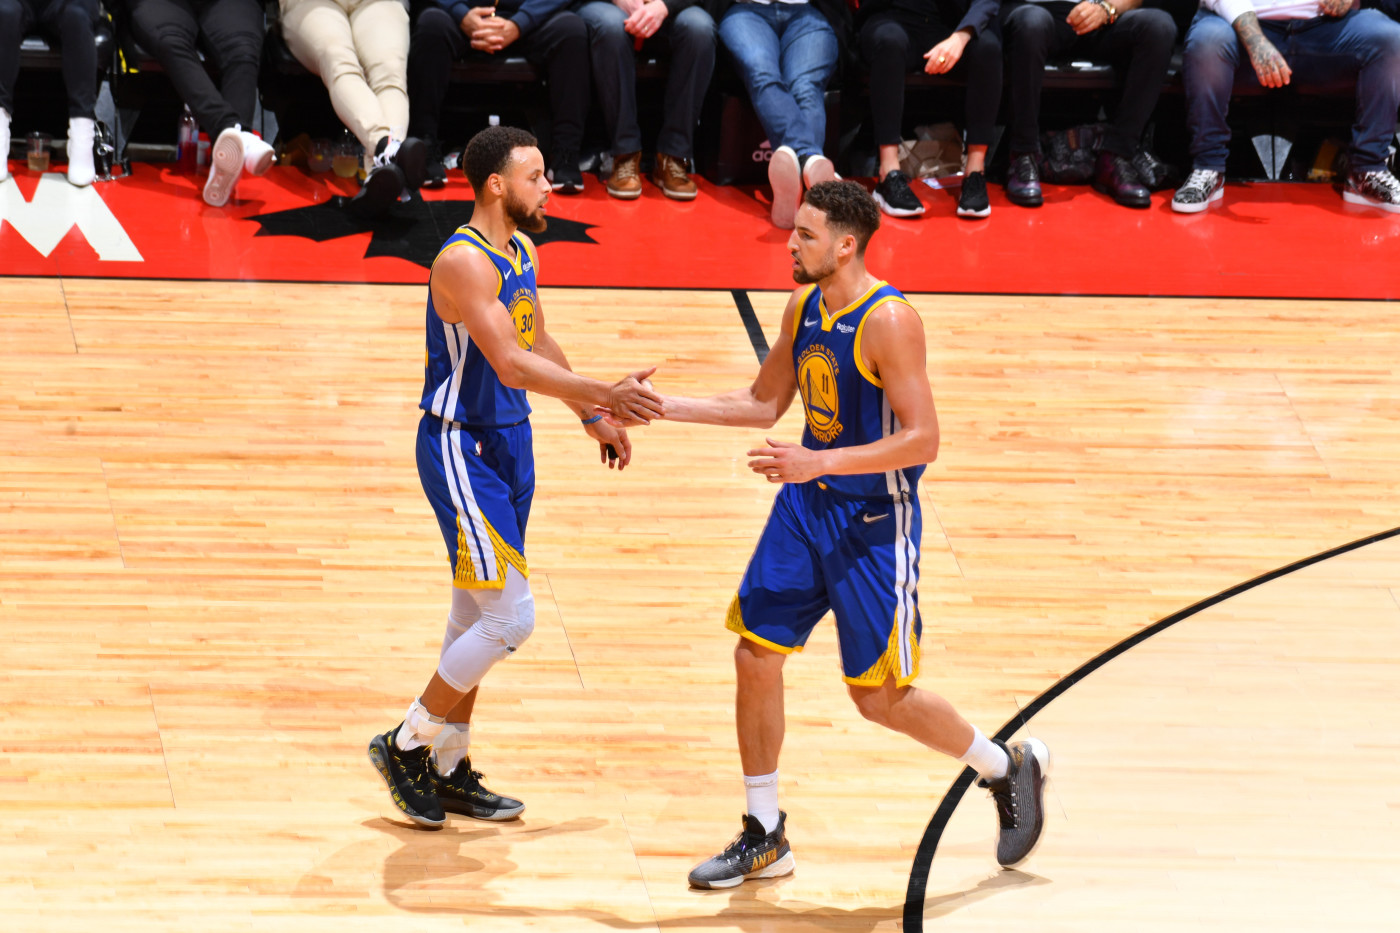 Steph Curry & Klay Thompson